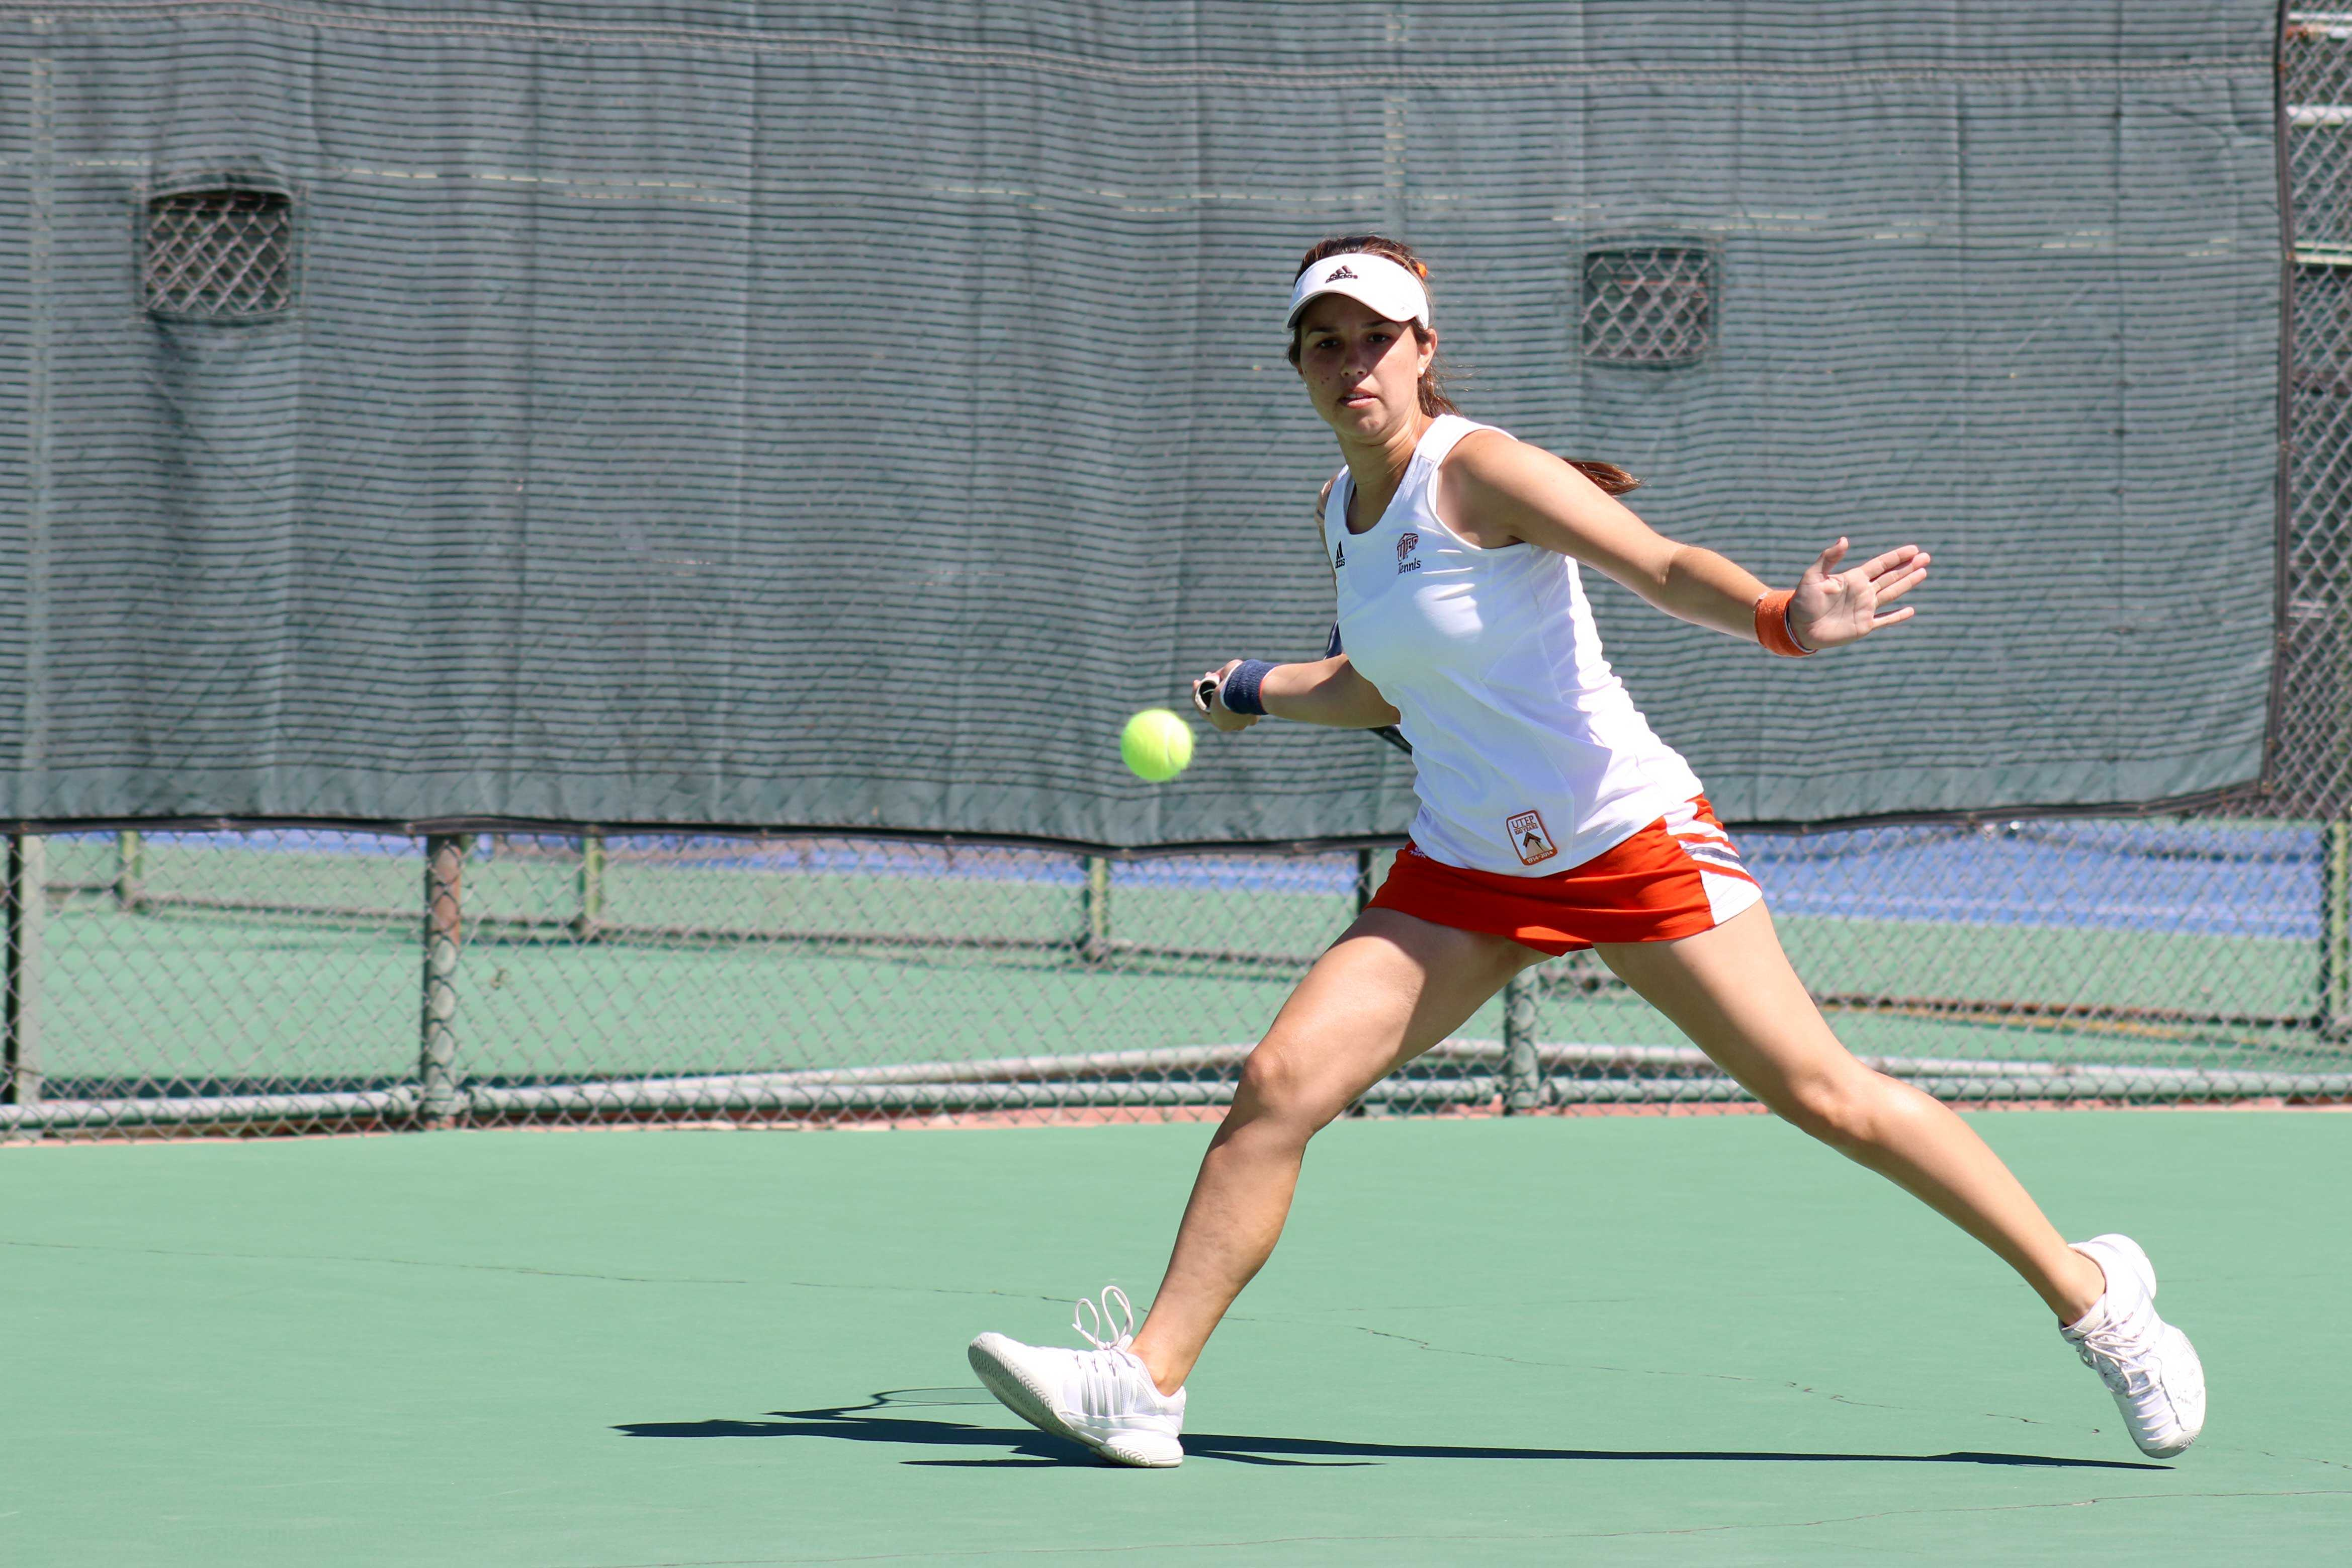 The UTEP women's tennis team will finish the season on the road with their final regular season match taking place in Las Cruces, N.M.